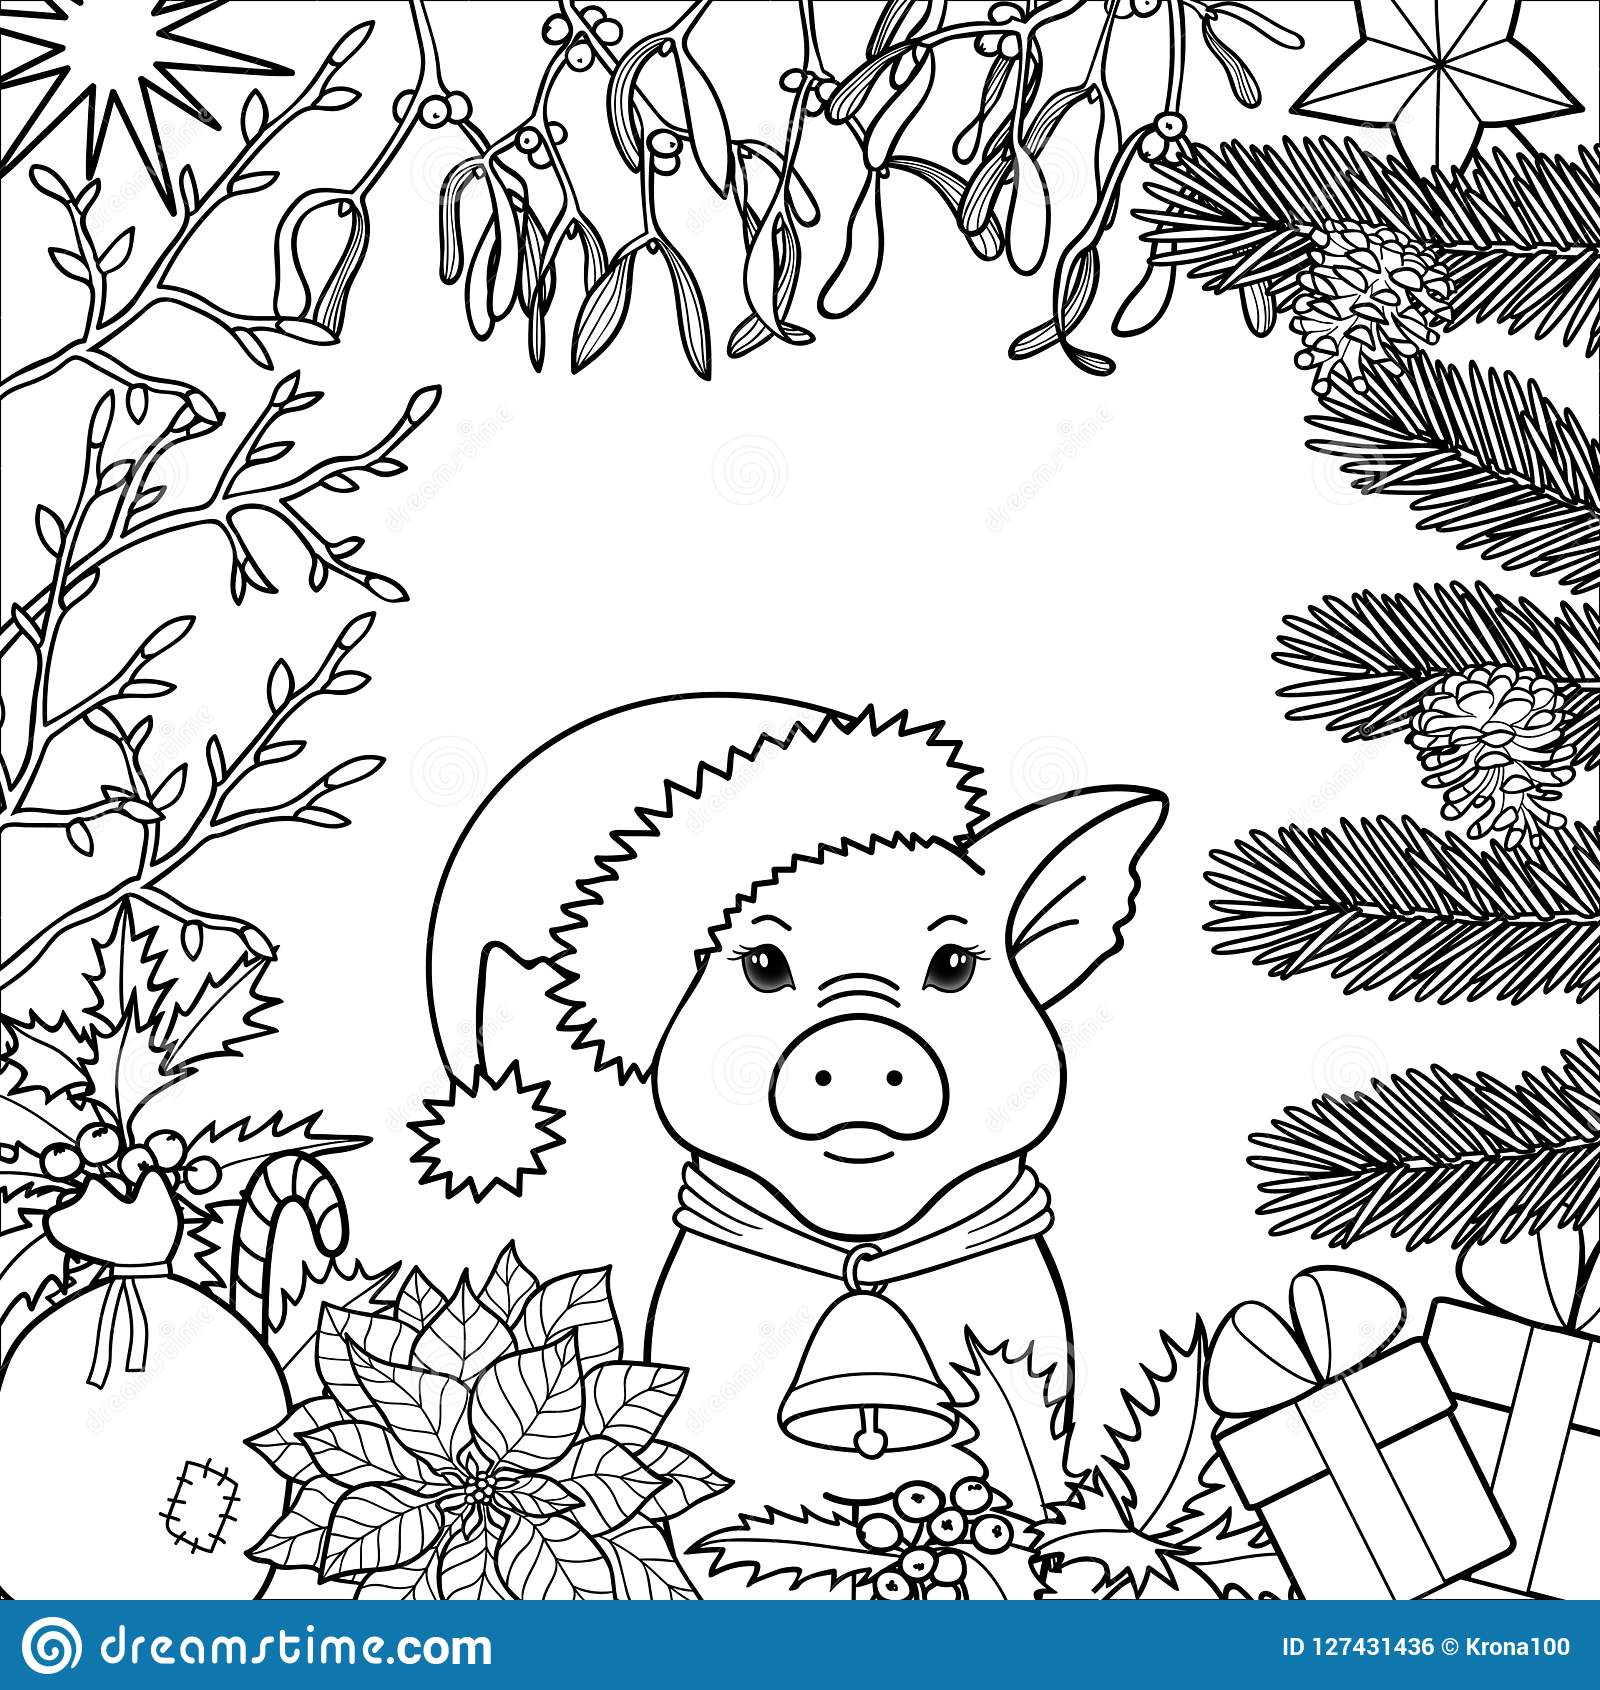 Winter holiday coloring page with pig symbol 2019 black and white square template for greeting cards mock ups coloring books and covers with text place